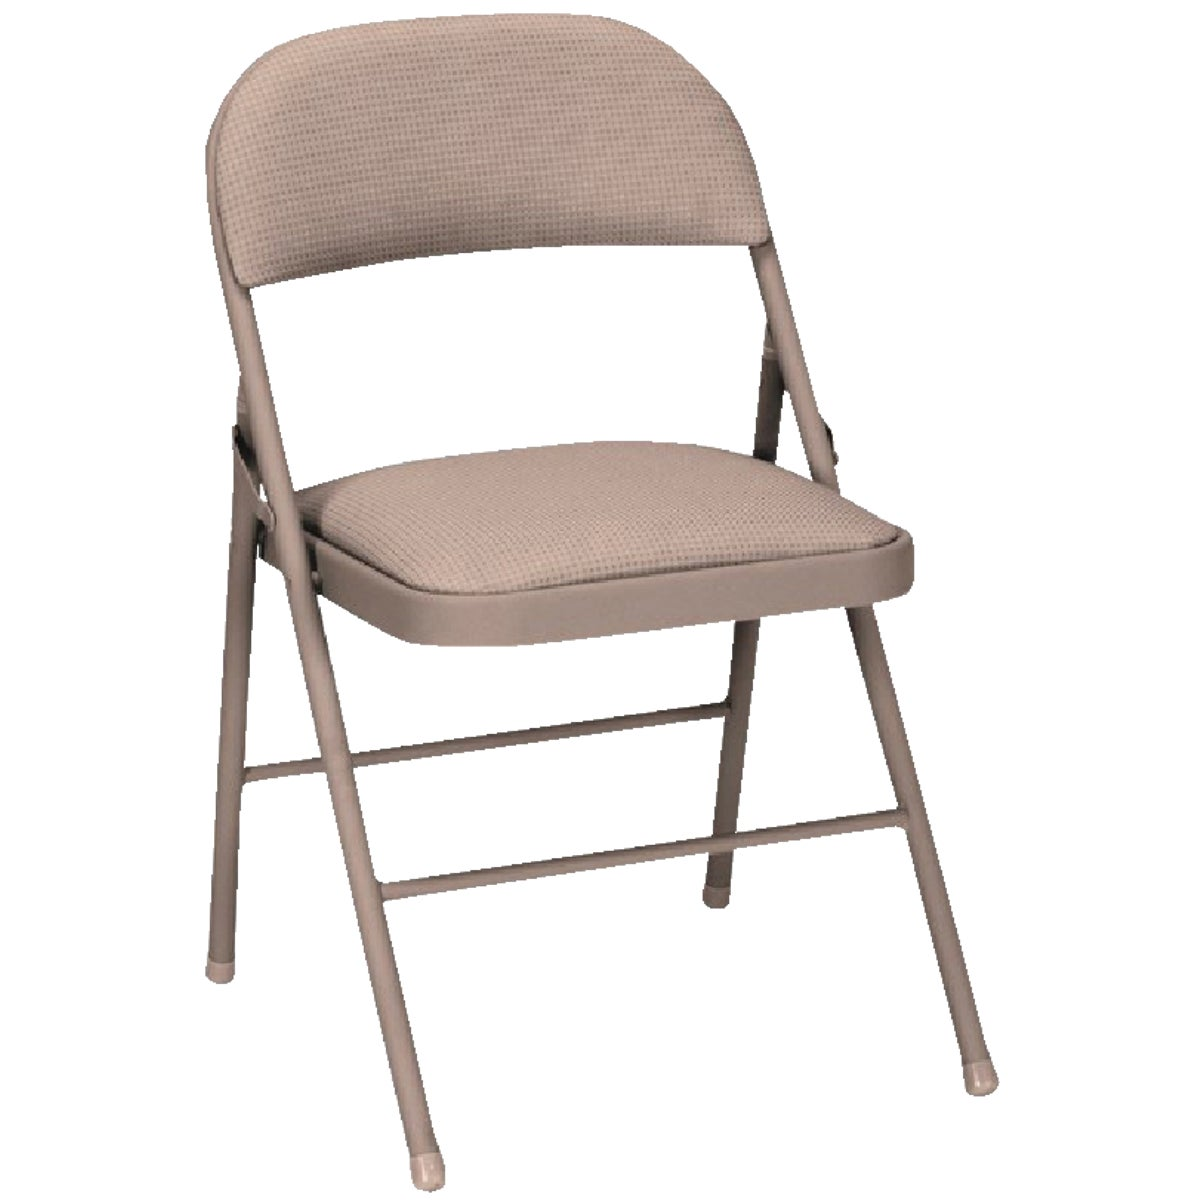 LINEN FBRC FOLDING CHAIR - 14-995-ALC4 by Cosco    J Myalls